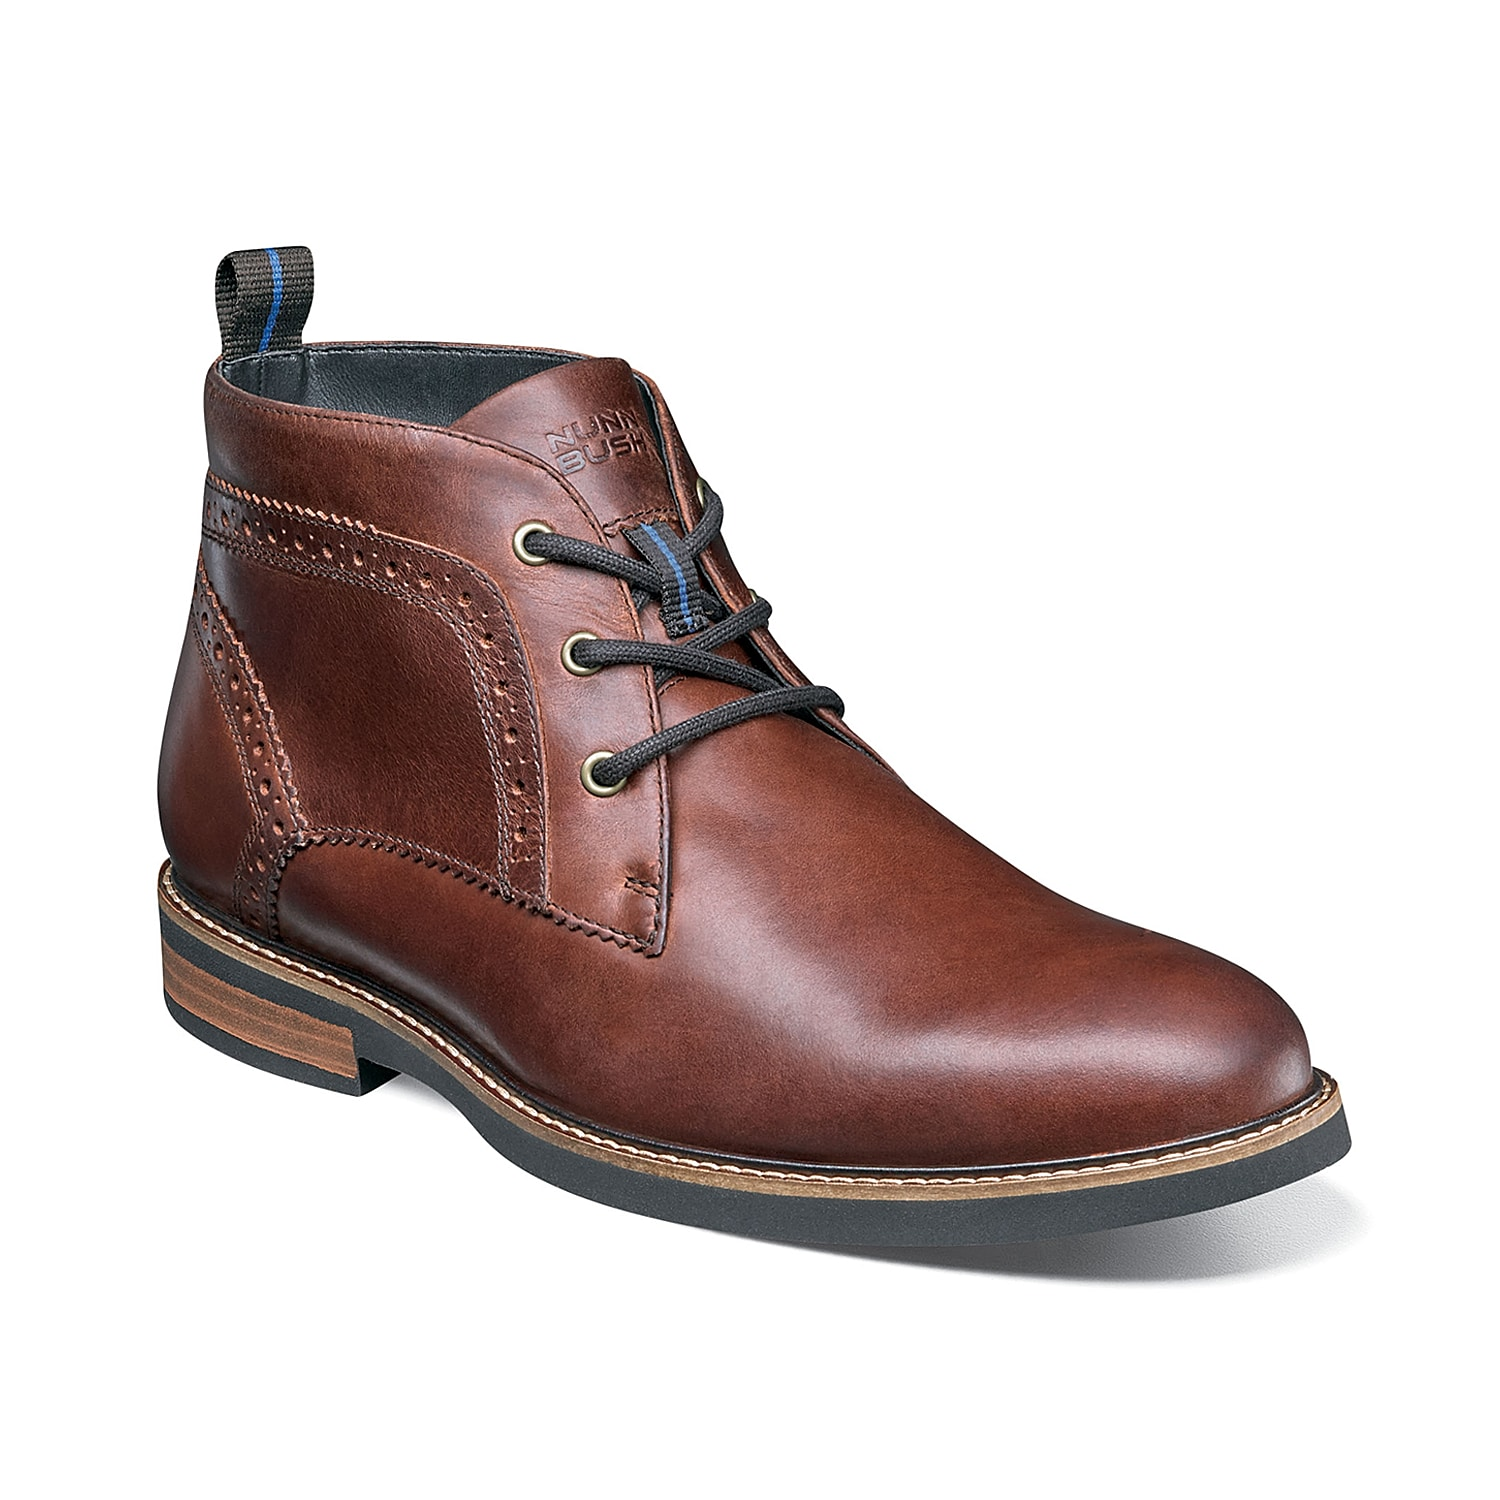 Perfect your look with the Ozark chukka boot from Nunn Bush. Enhanced with brogue-inspired details, this lace-up boot comes with a memory foam insole that delivers maximum comfort.